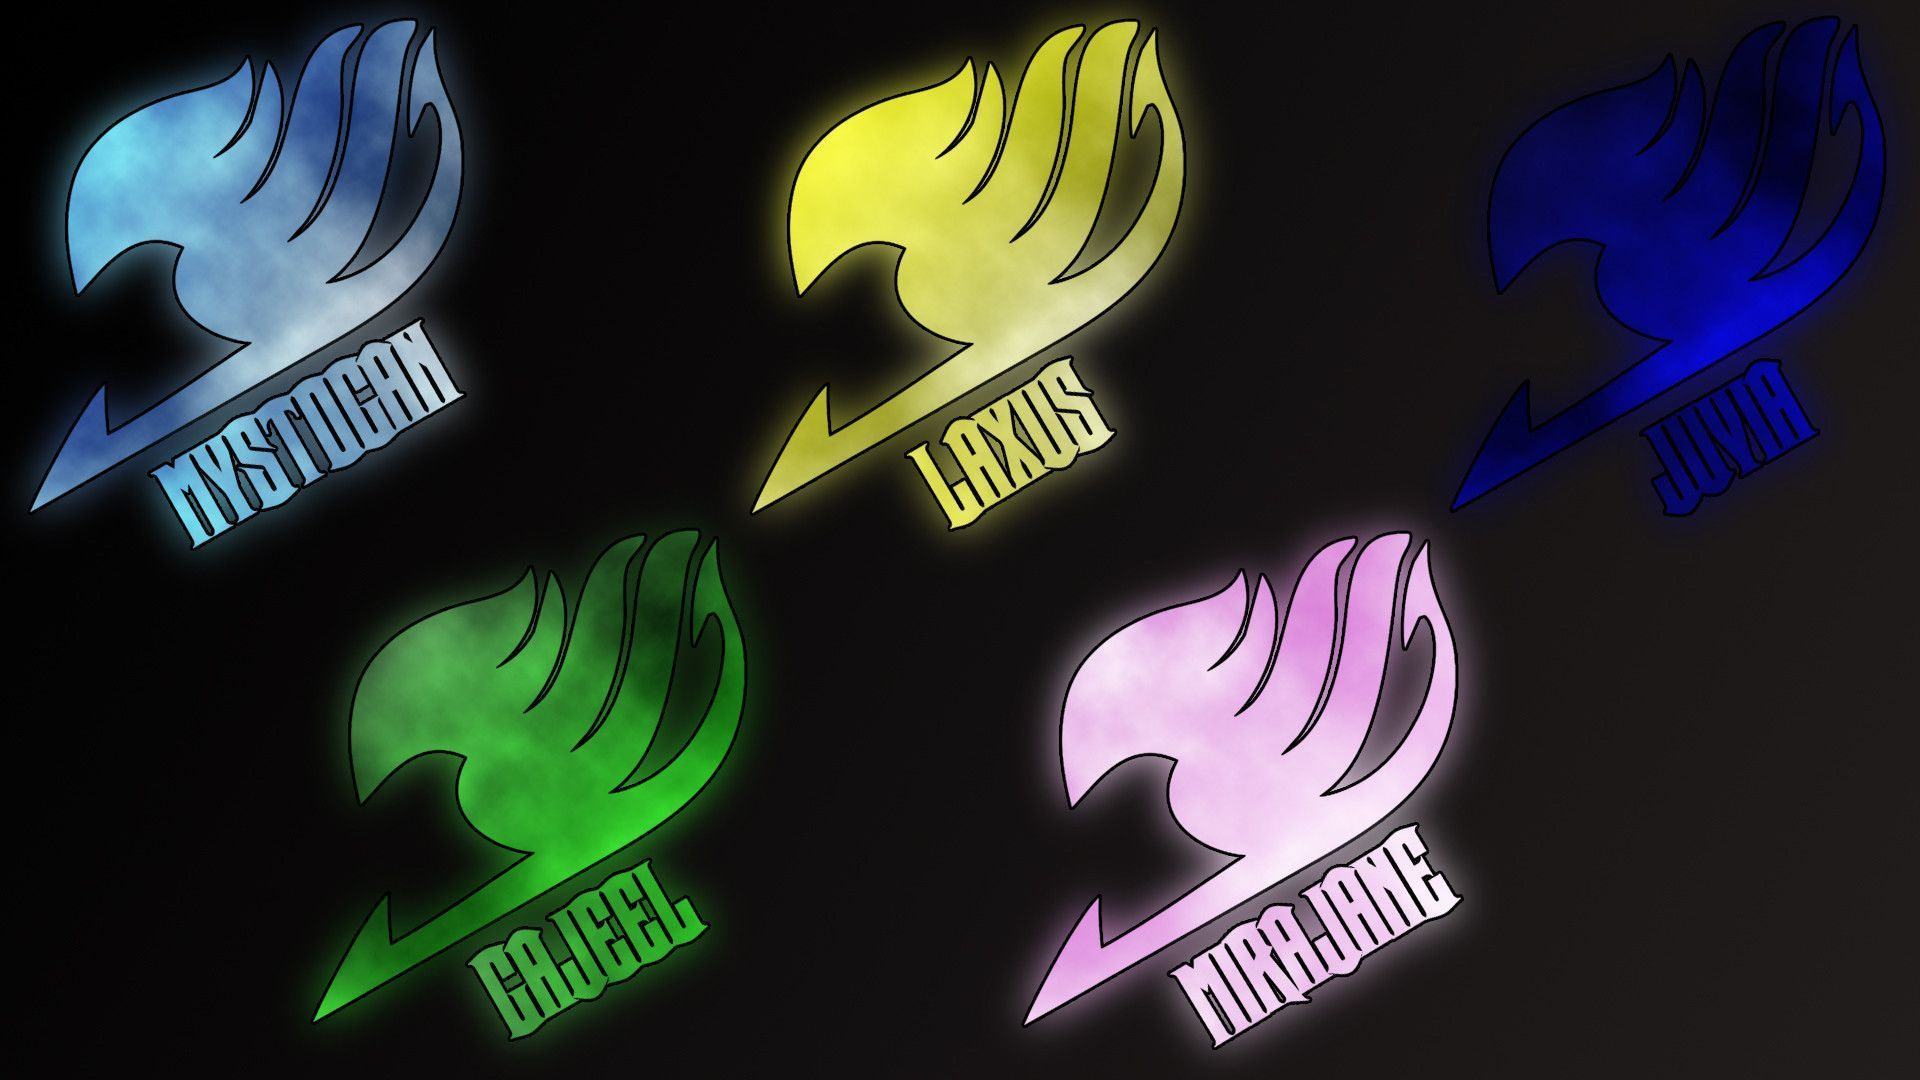 Fairy tail logo wallpapers wallpaper cave logo pinterest fairy fairy tail logo wallpapers wallpaper cave biocorpaavc Gallery